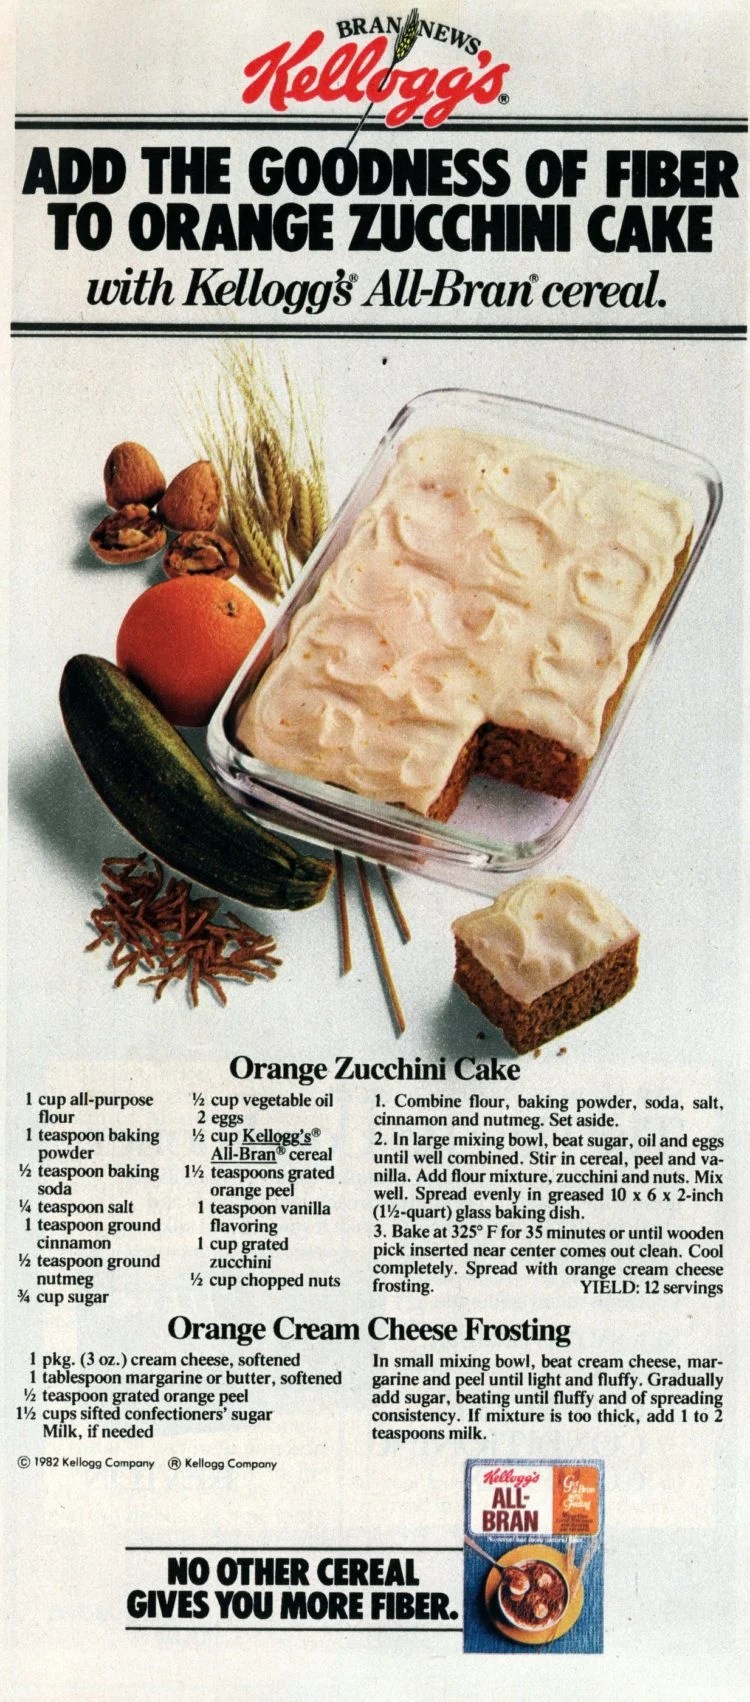 Retro recipe for orange zucchini cake with orange-cream cheese frosting, plus a bonus recipe variation